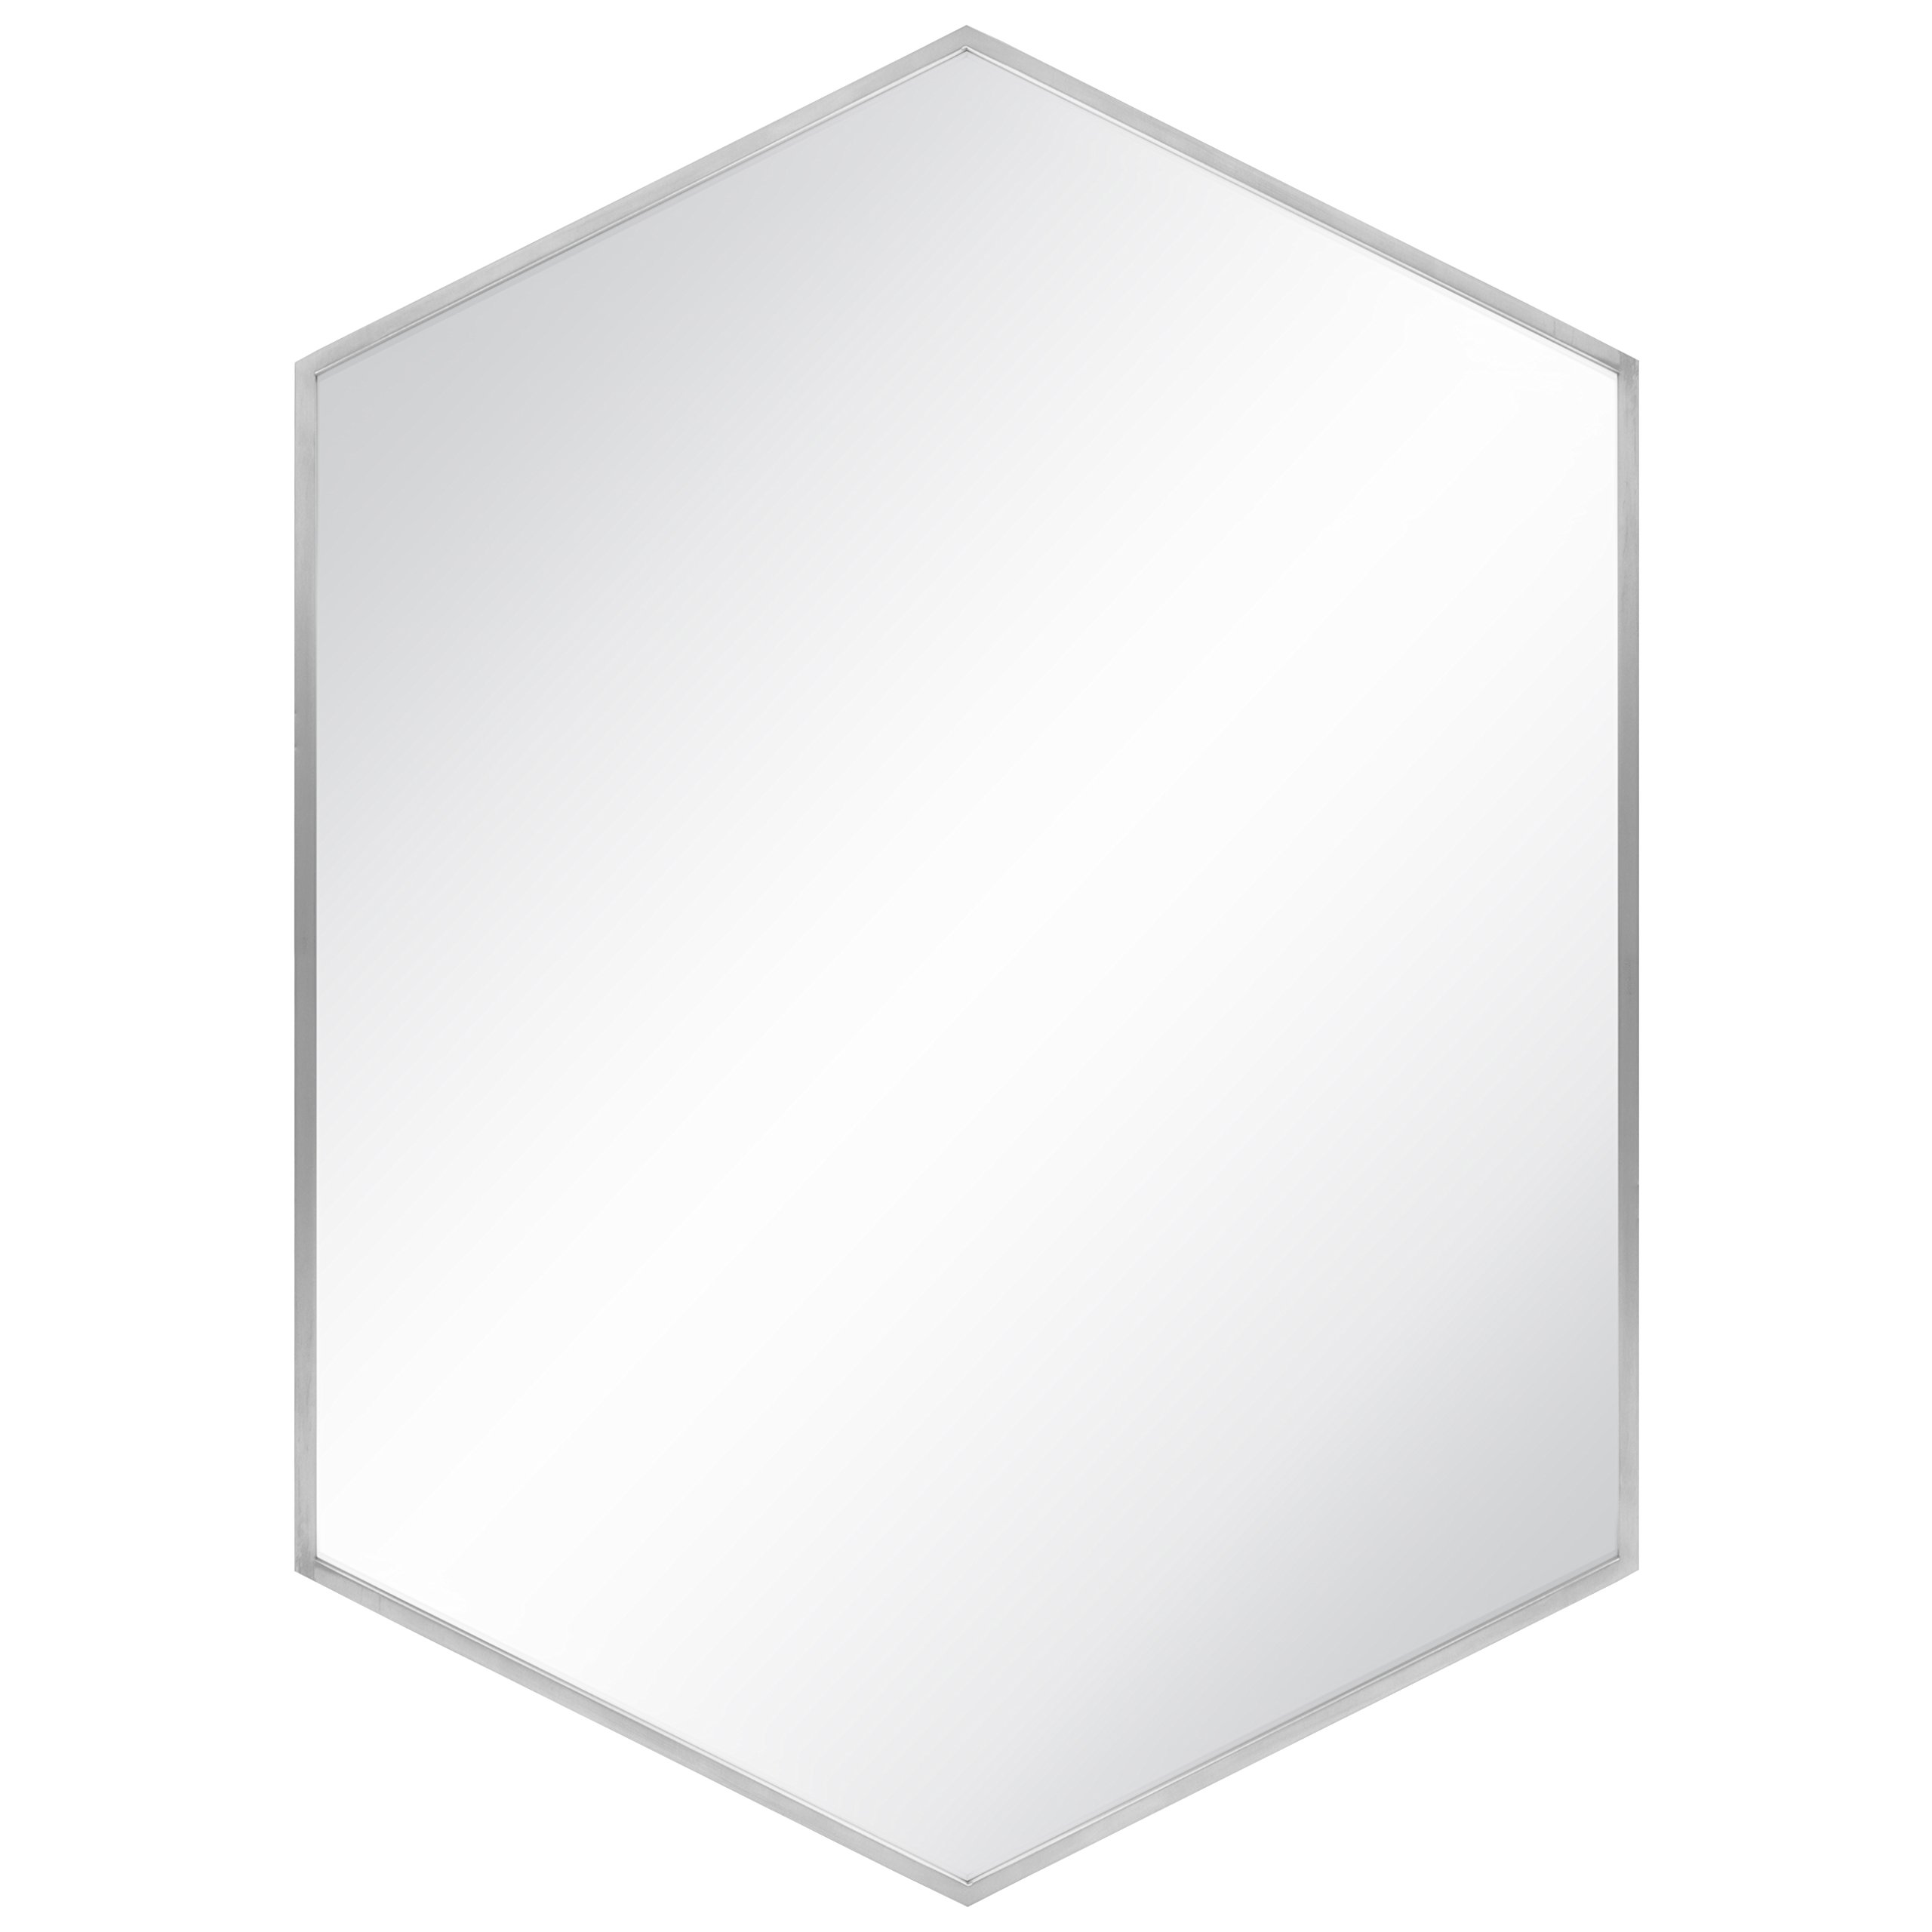 Best Choice Products Modern Hexagon Decorative Mirror for Bedroom, Living Room, Bathroom Vanity Home Decor - Silver